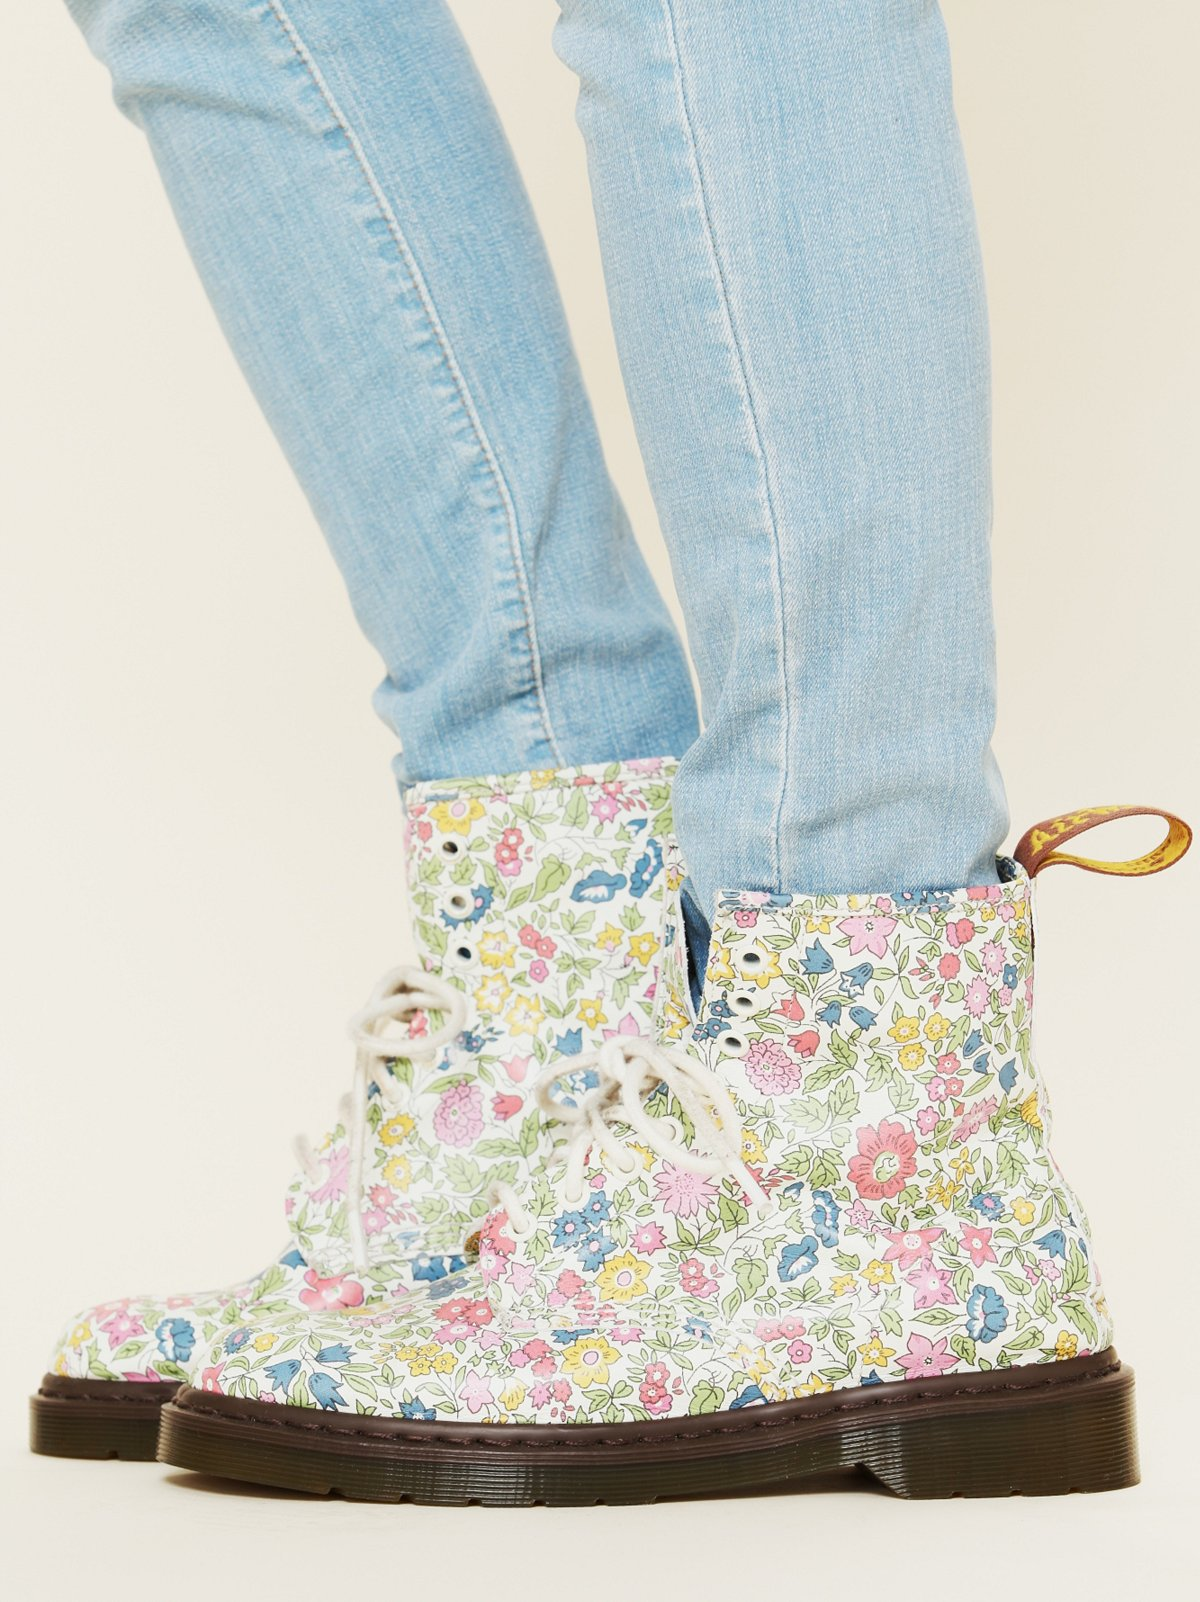 Liberty London and Dr. Martens 1460 Boots